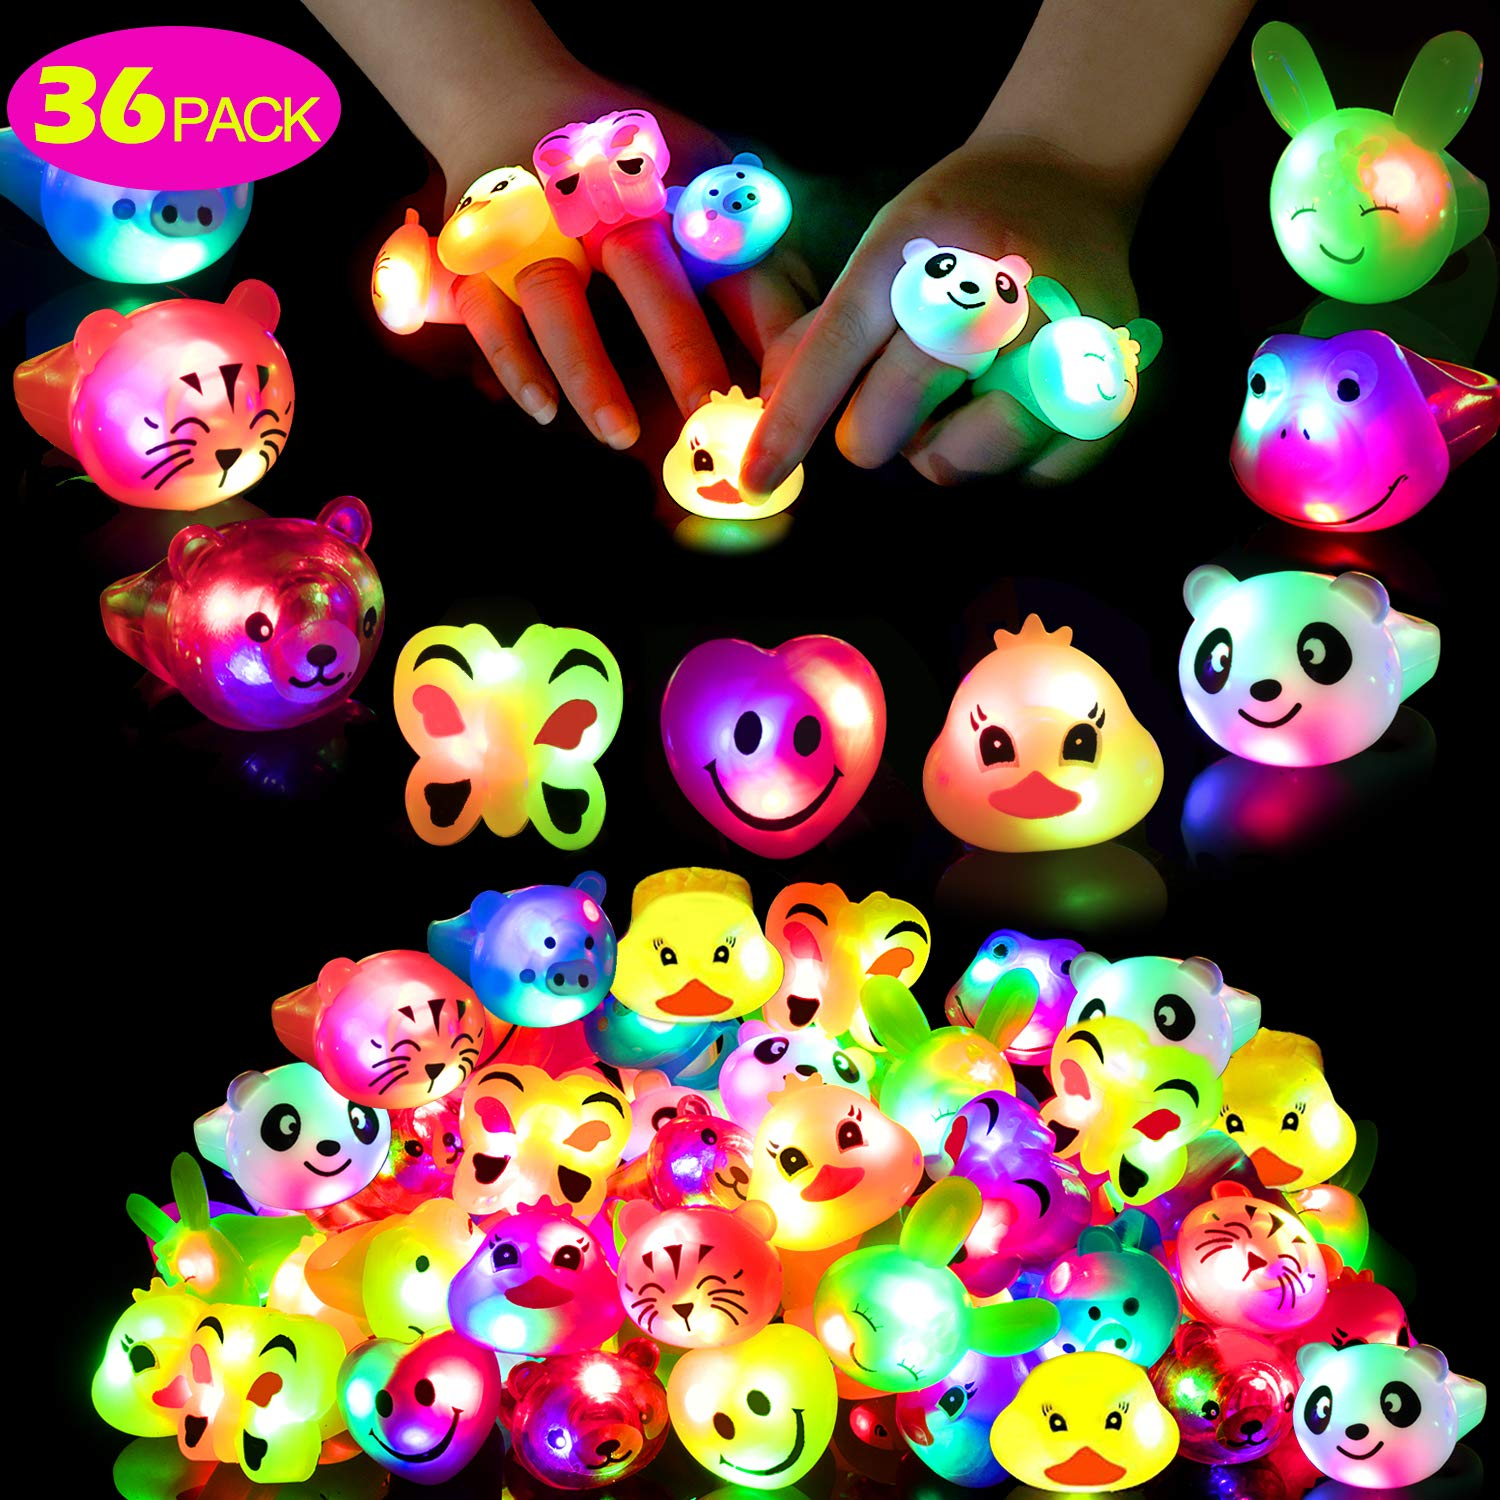 Mikulala Birthday Party Favors for Kids Prizes Flashing 36 Pack LED Jelly Light Up Rings Toys Bulk Boys Girls Gift Blinky Glow in The Dark Party Supplies 9 Color 9 Shape by Mikulala